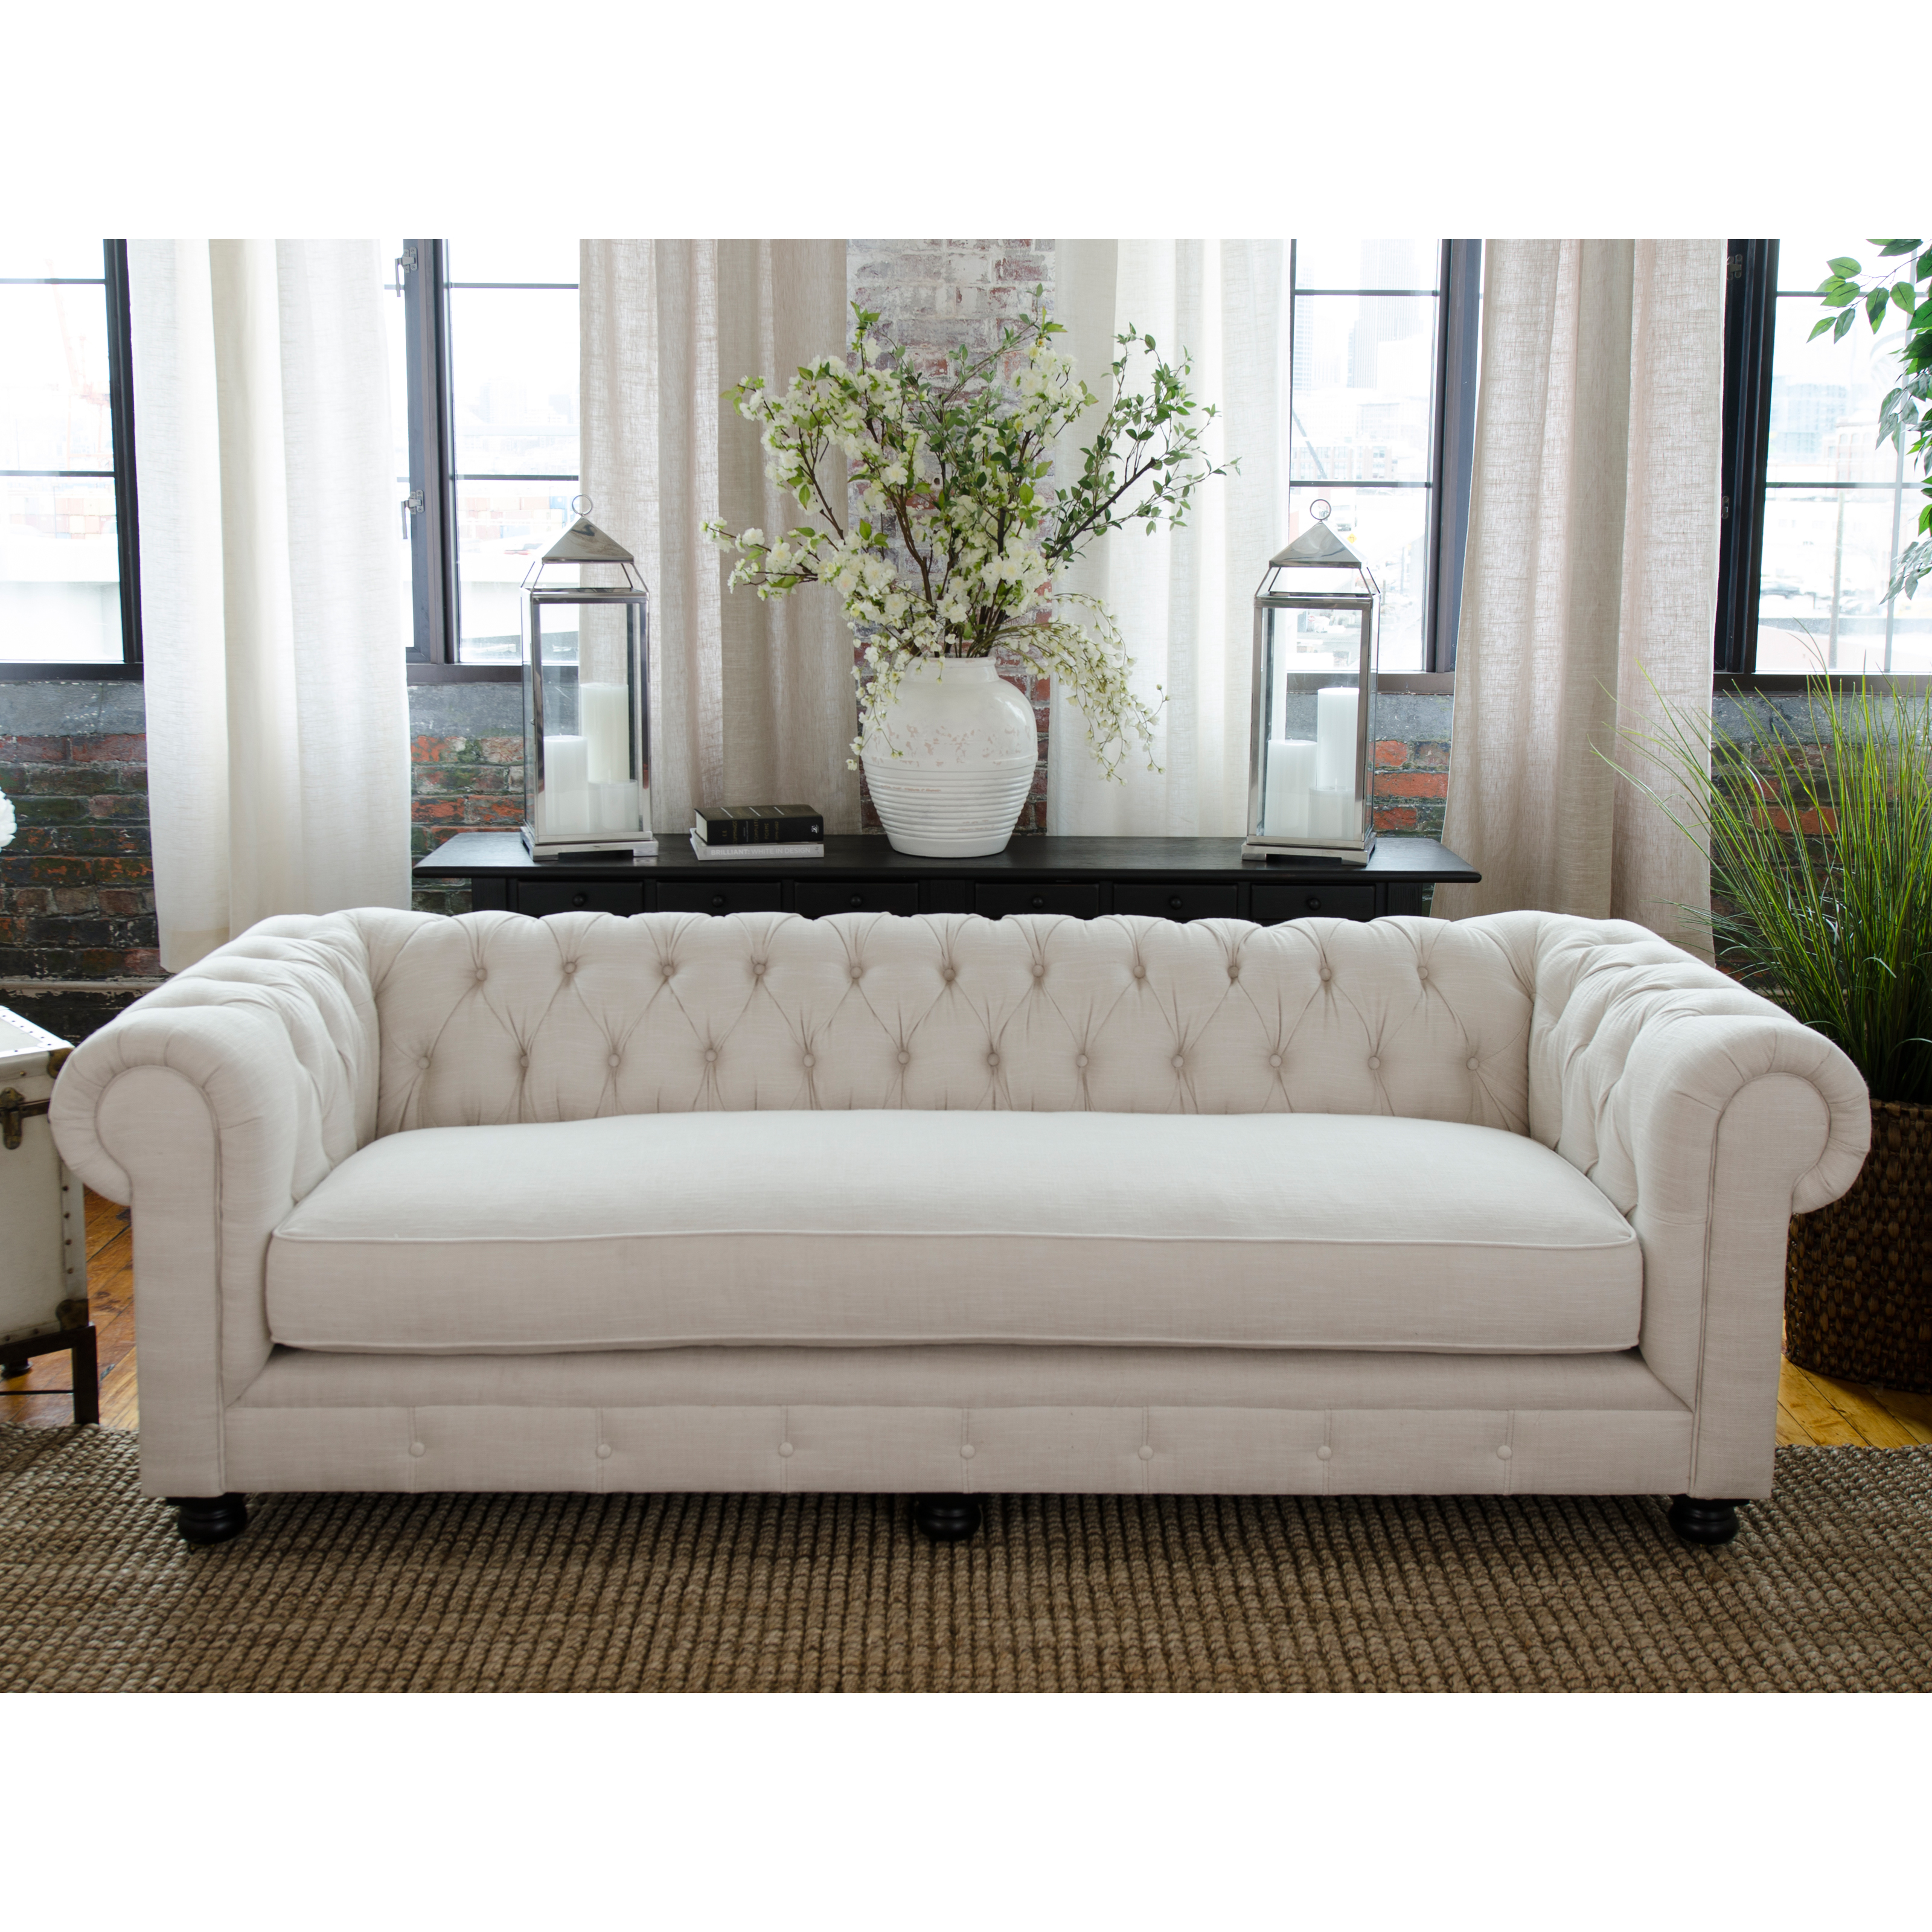 Fabric Furniture: Elements Fine Home Estate Fabric Sofa